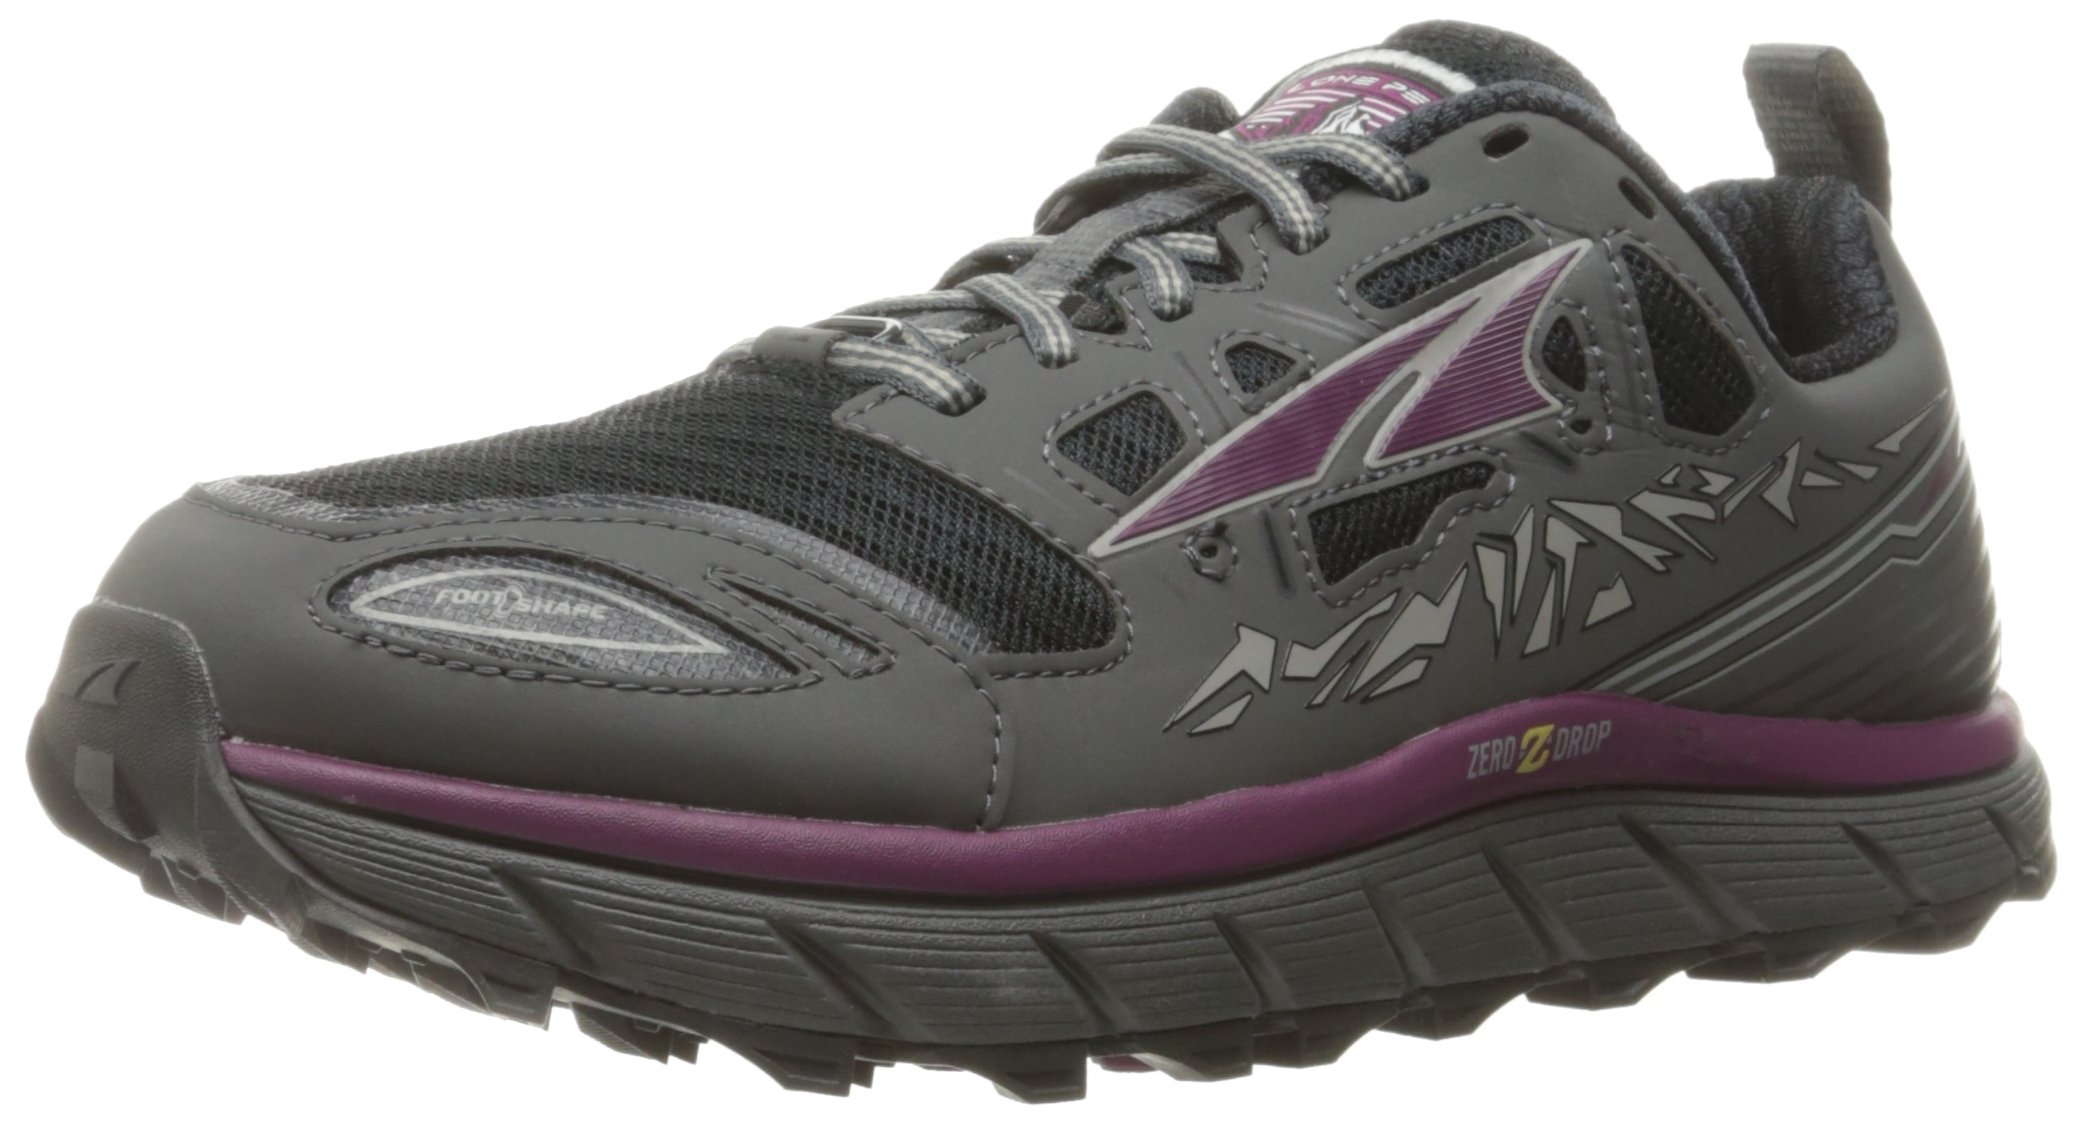 Altra Women's Lone Peak 3 Trail Runner, Purple, 10.5 M US